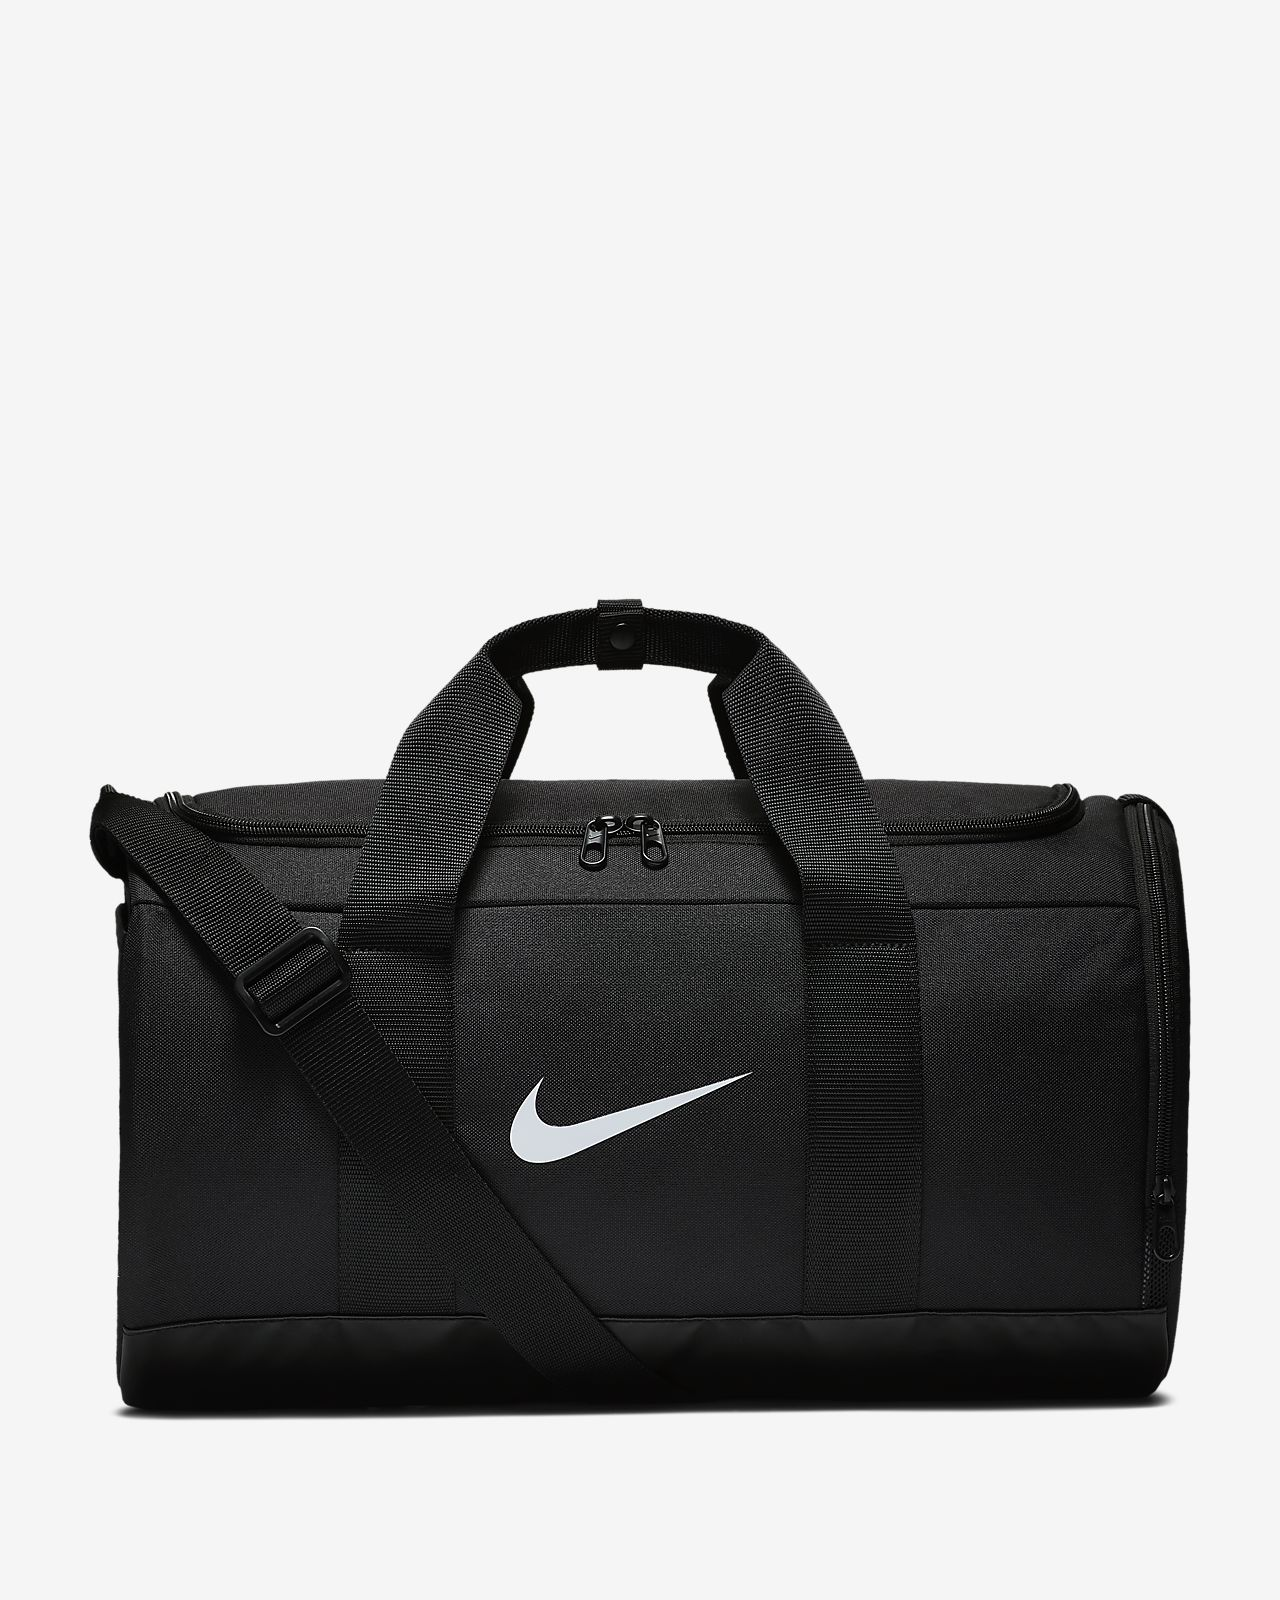 Nike Team Women's Training Duffel Bag